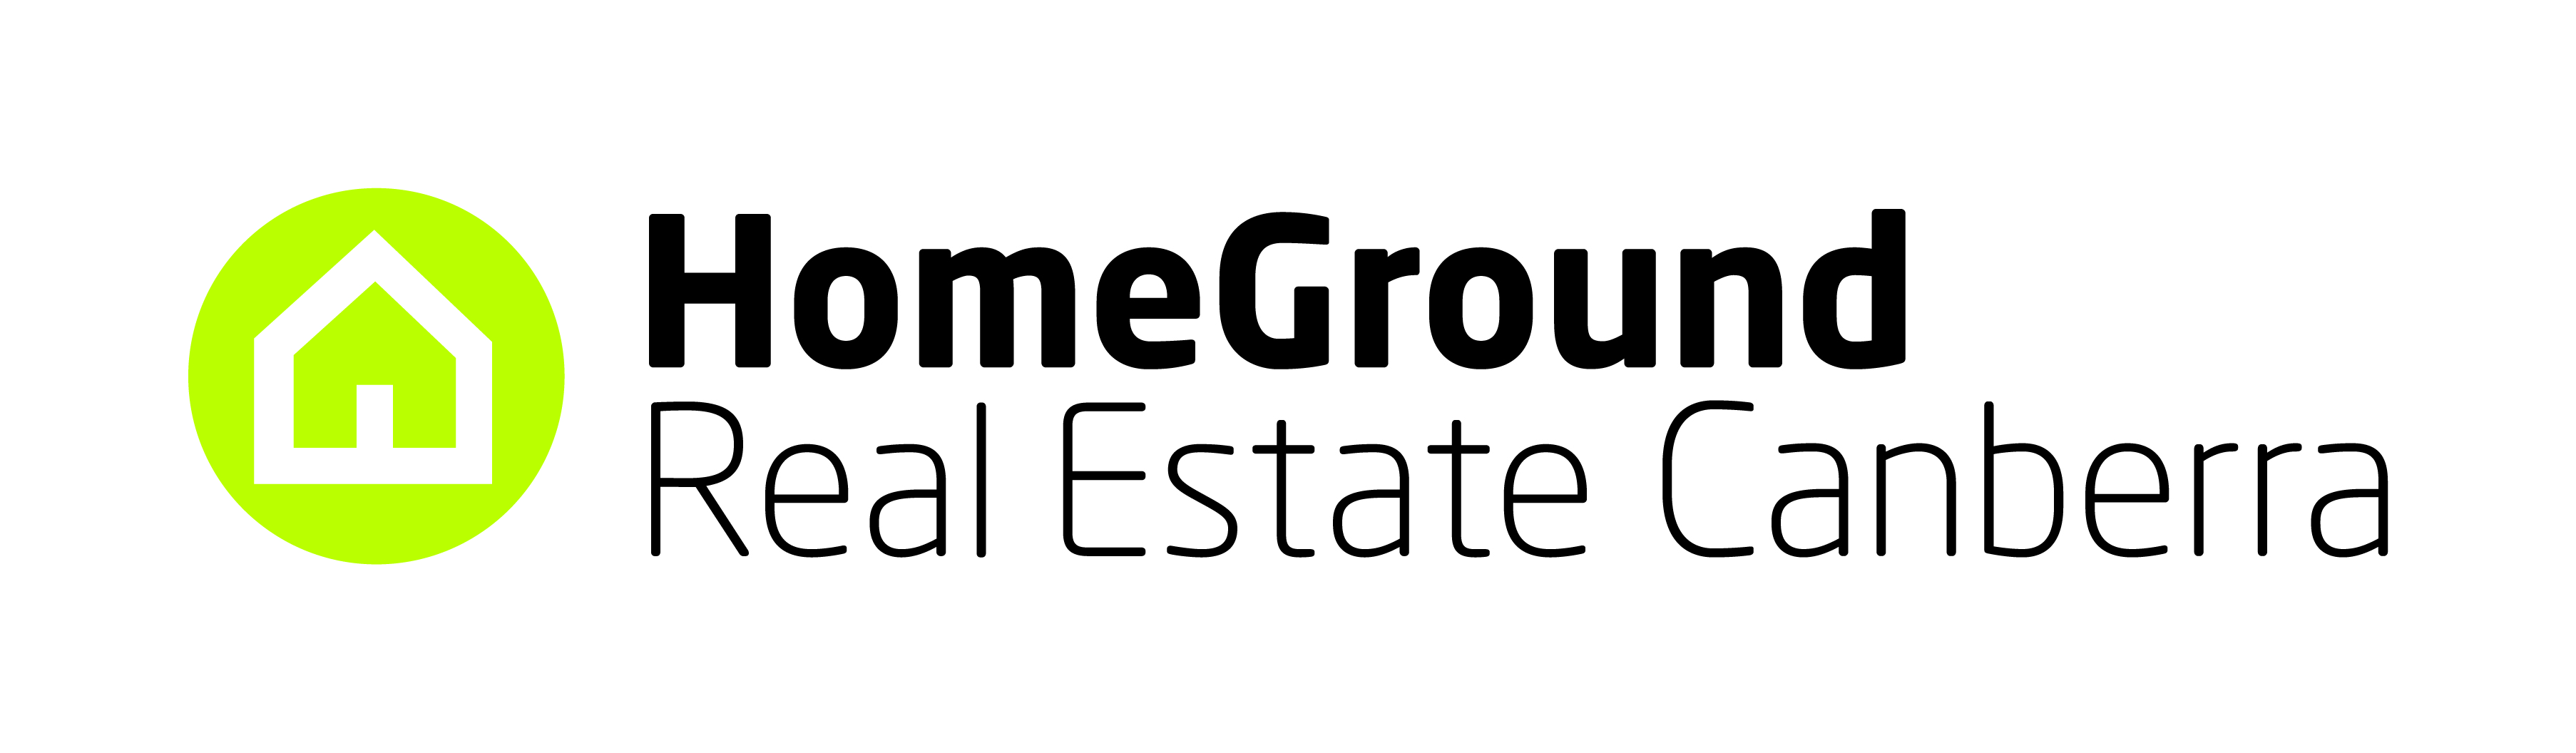 HomeGround Real Estate Canberra